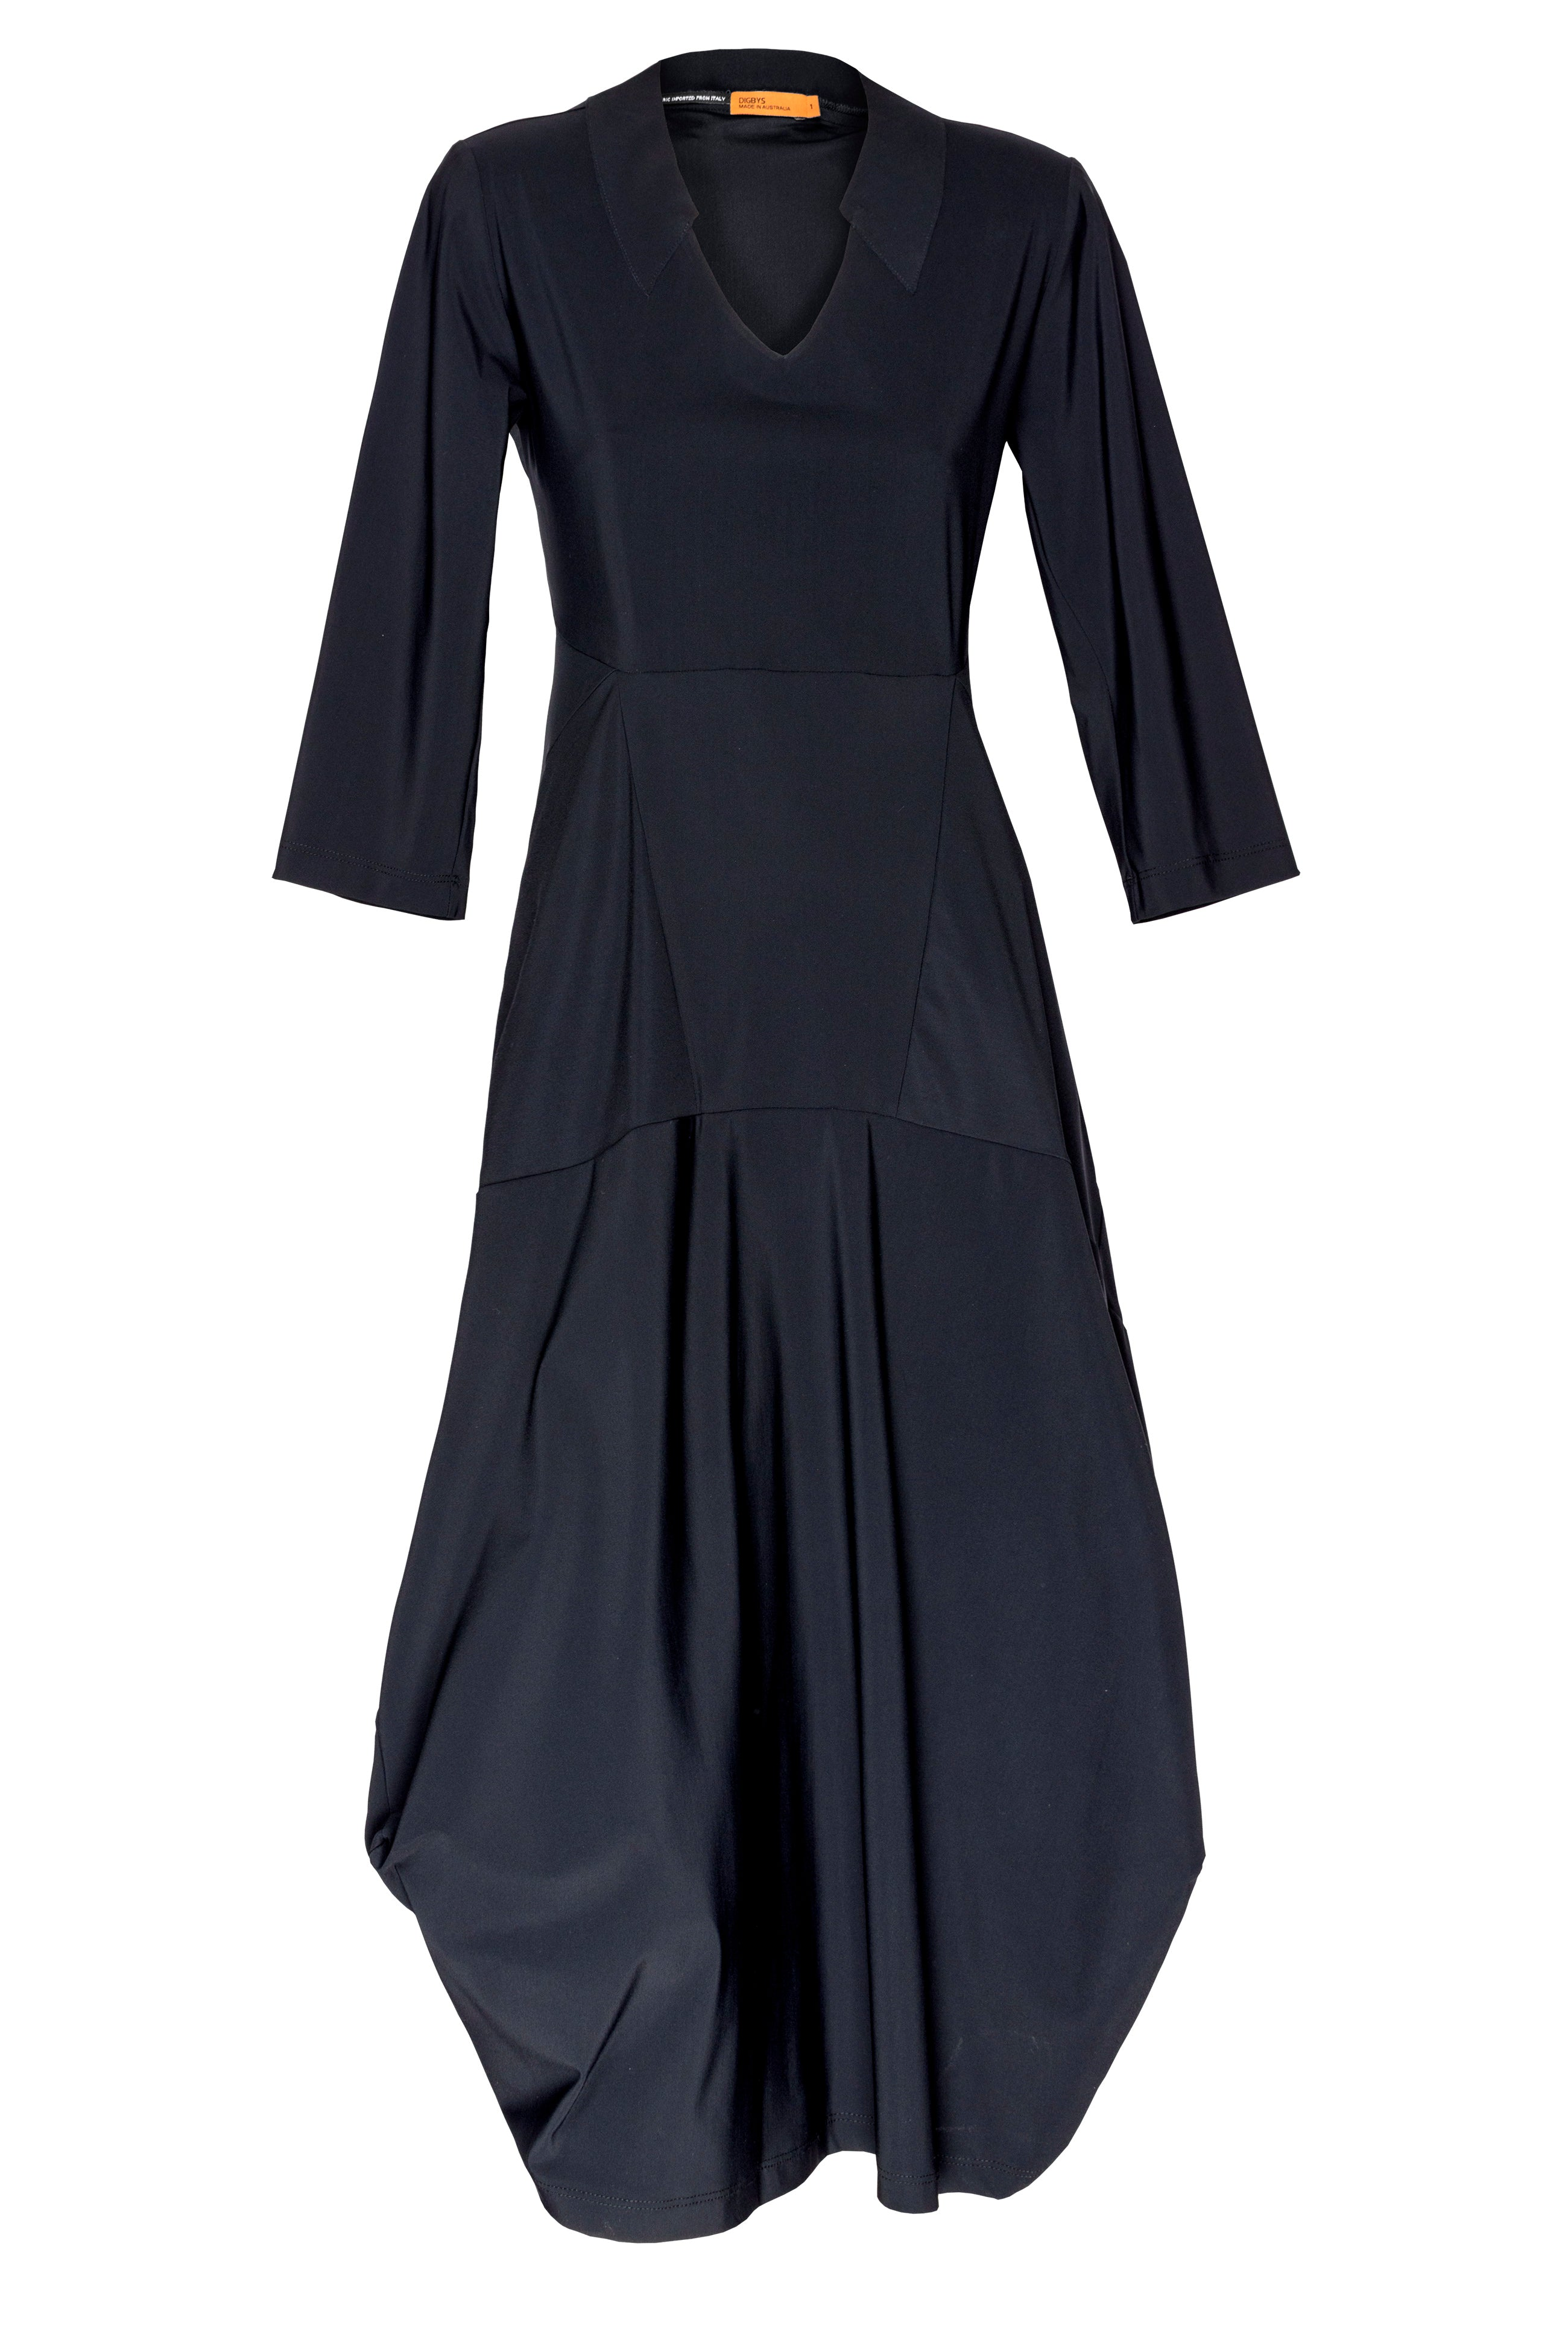 Black Jersey Vee Neck Three quarter sleeve panel dress Australian made